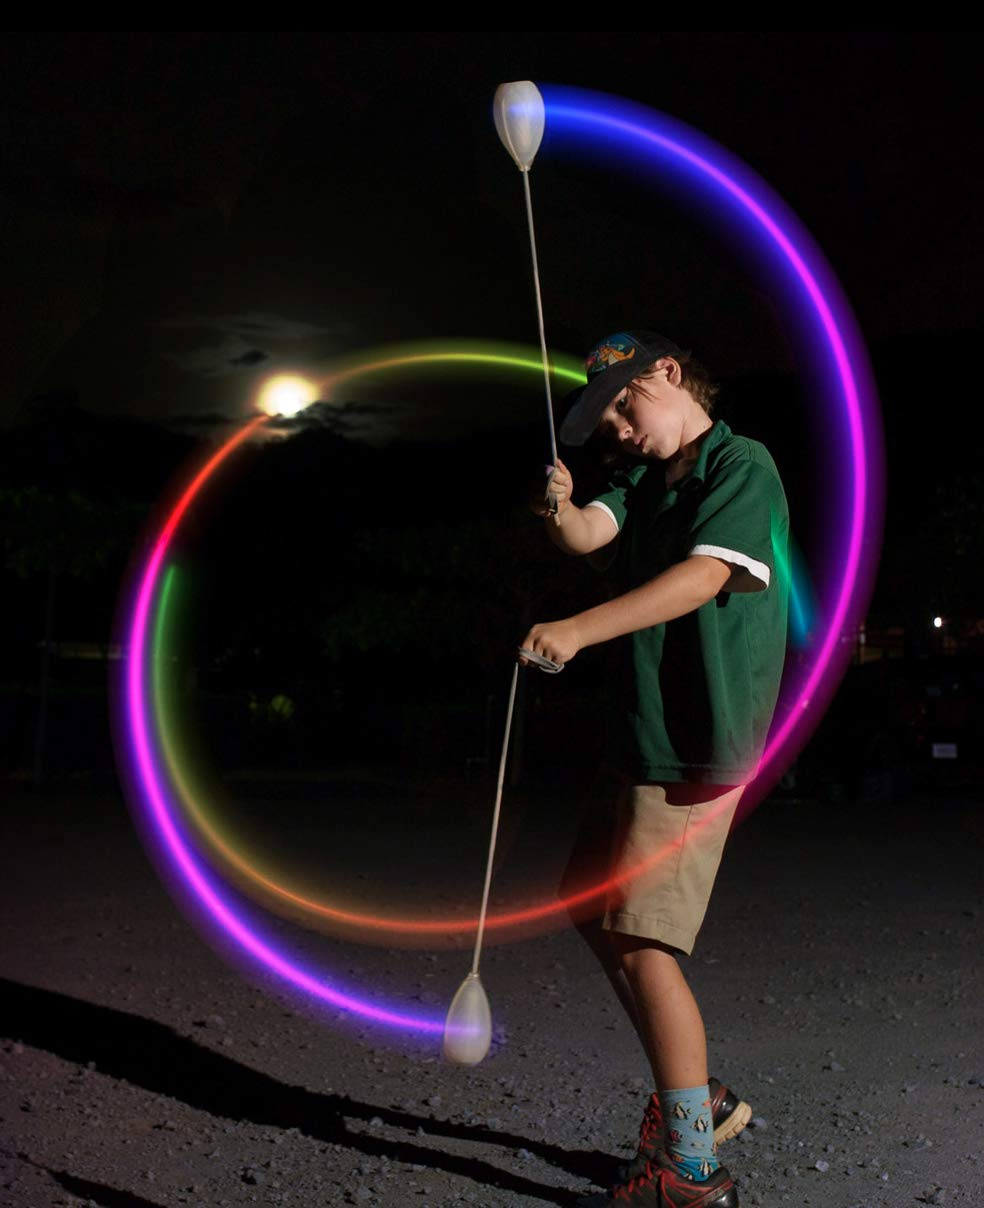 Podpoi v2 LED Poi - the World's Favorite Glowpoi by Flowtoys (Image #7)